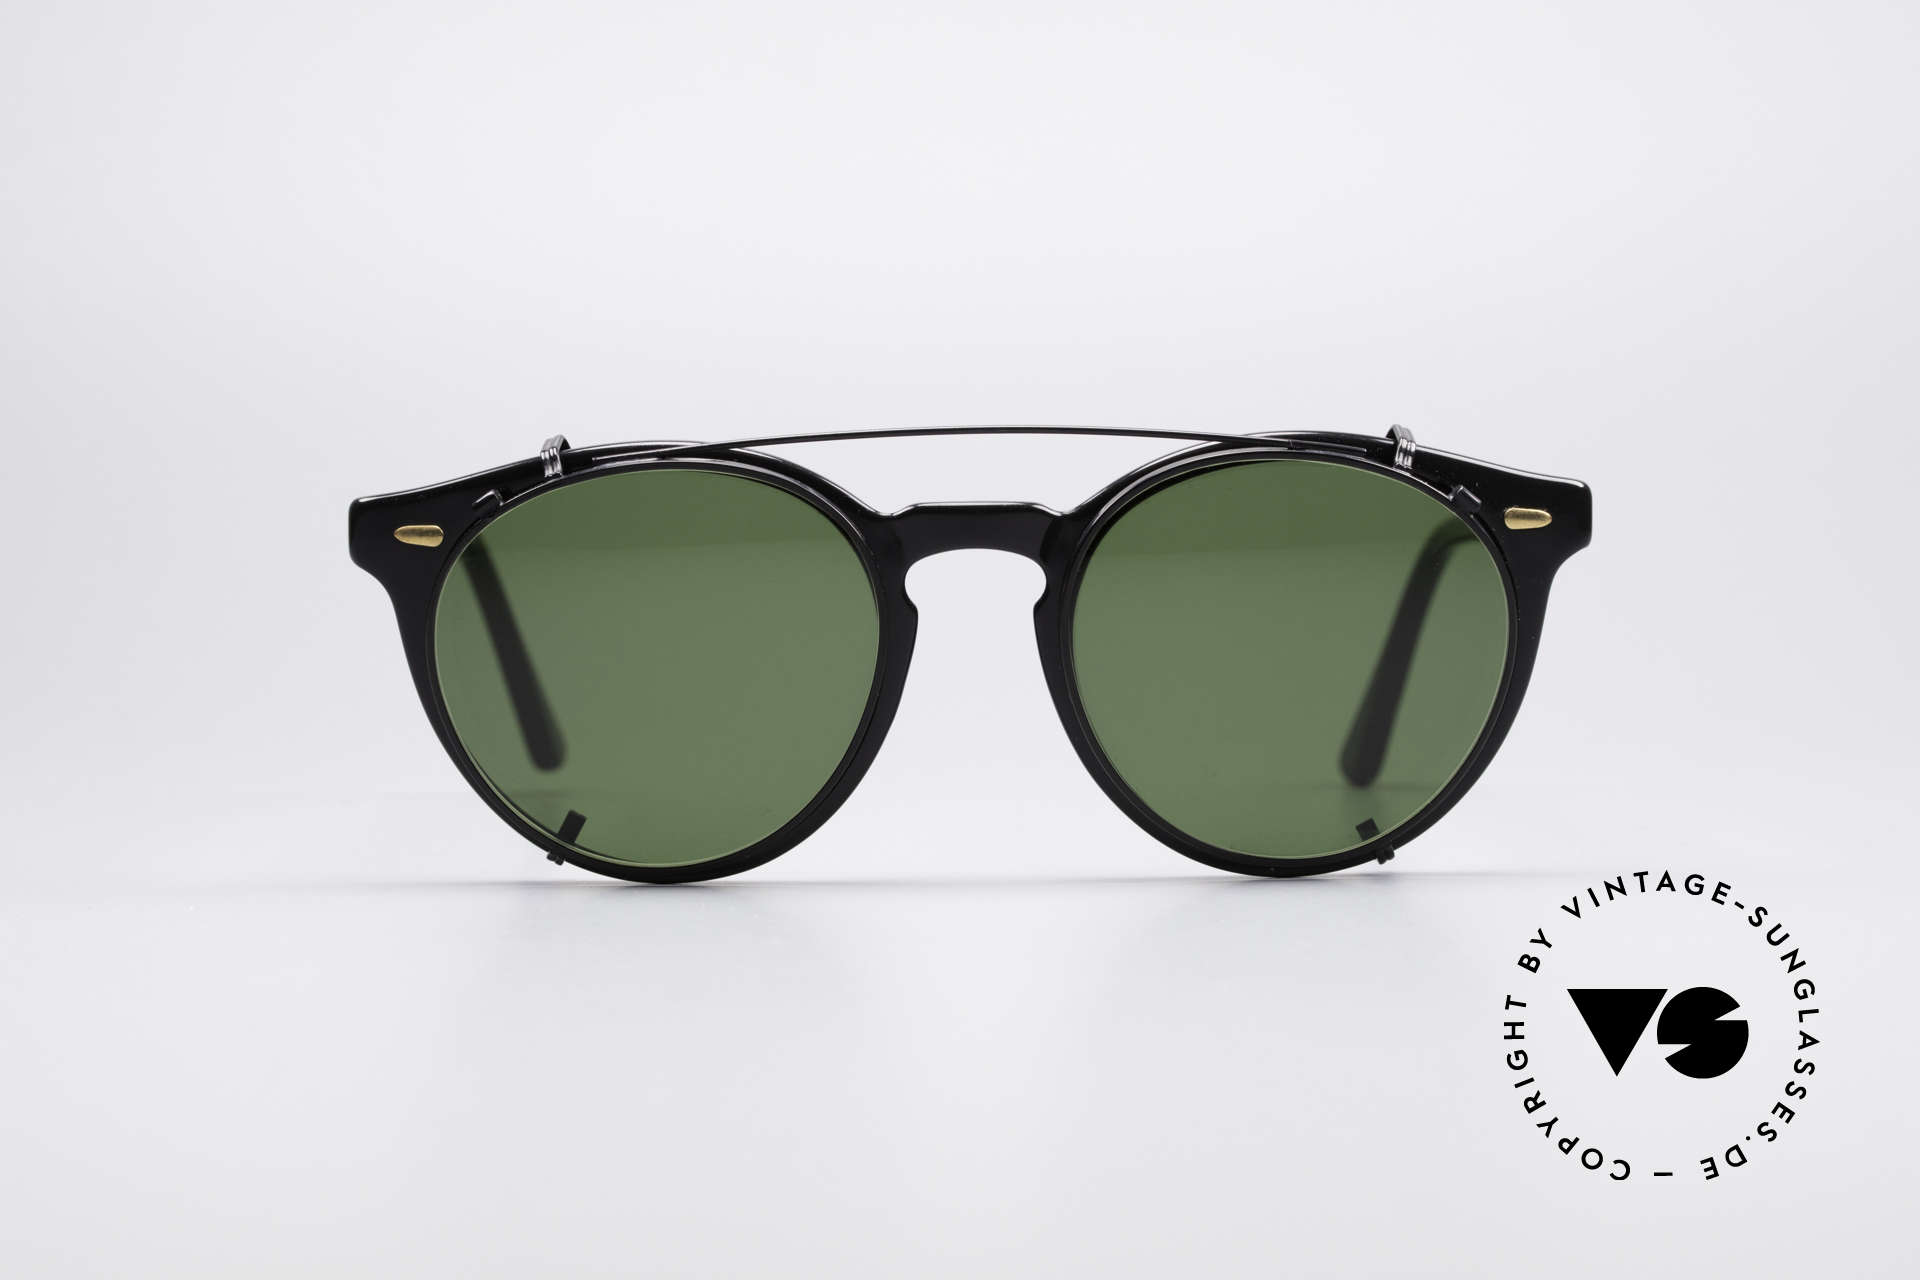 7e6d3b0ff8 You may also like these glasses. Cazal 974 90 s Designer Shades Unisex  Details